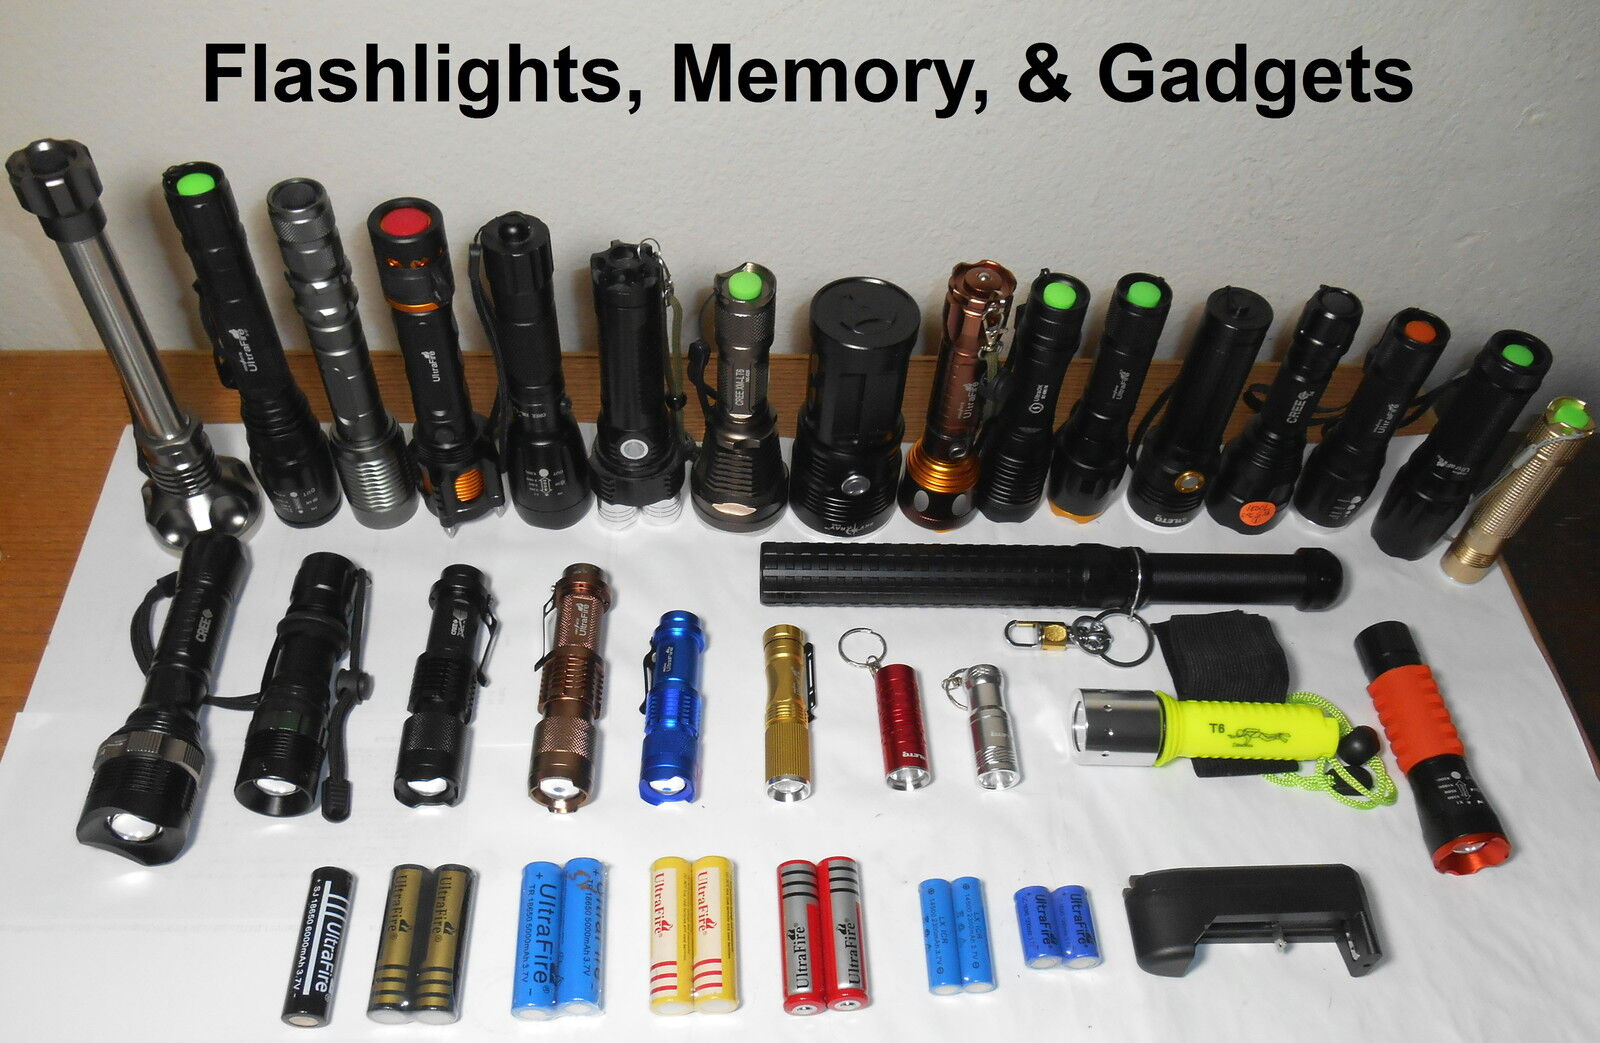 Flashlights, Memory and Gadgets